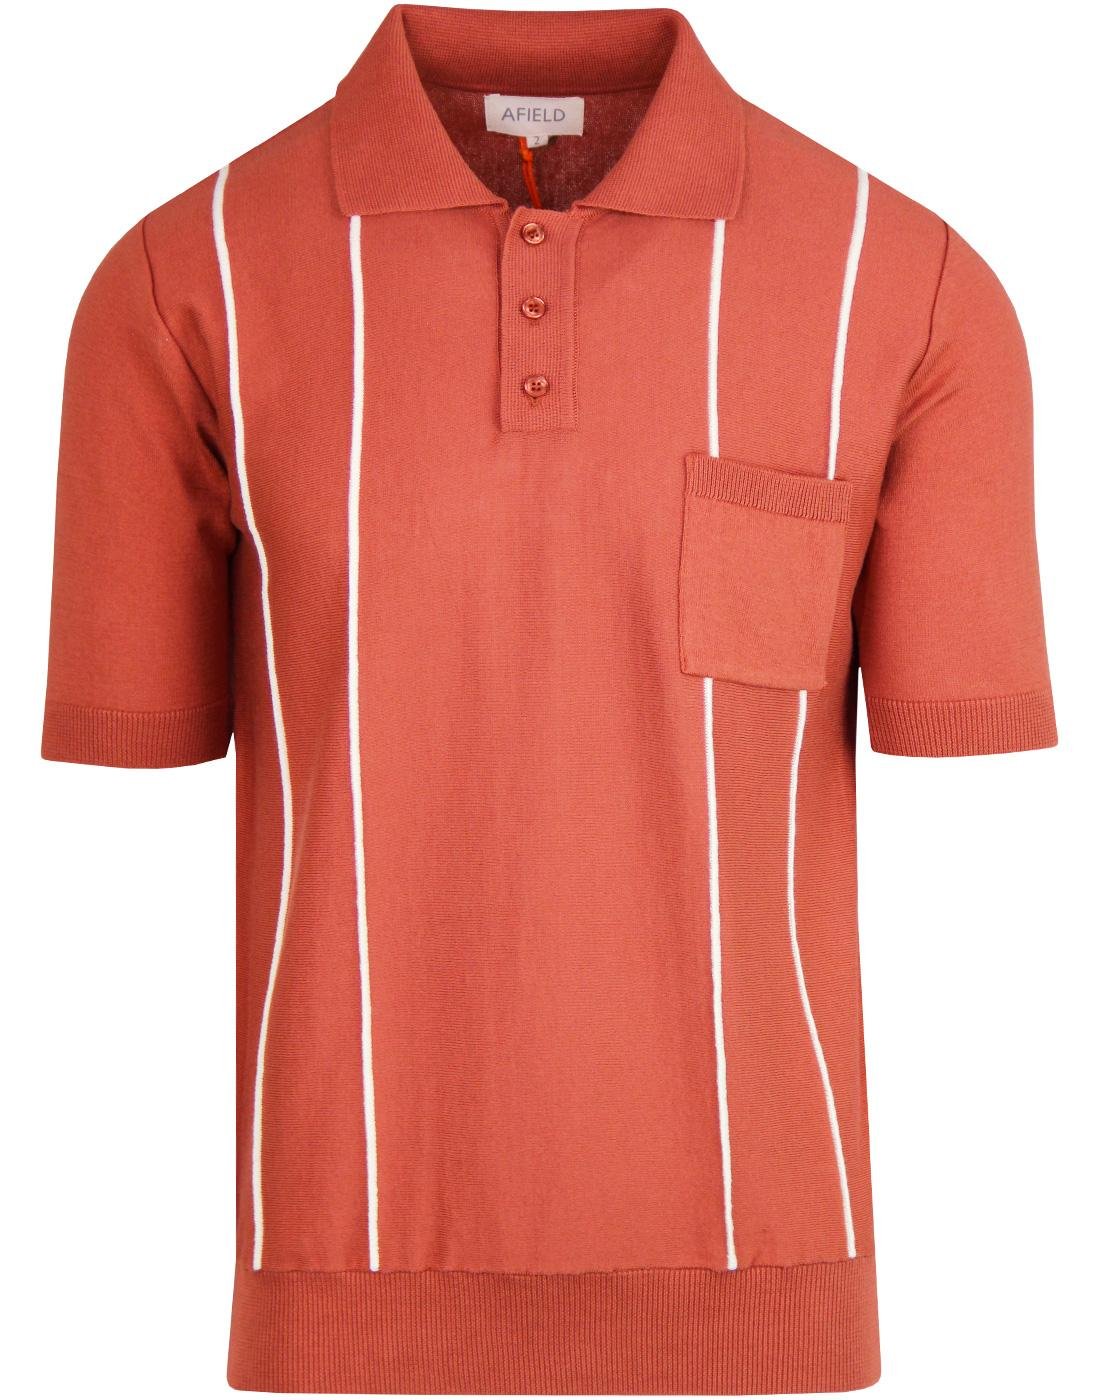 Alfaro AFIELD Mod Stripe Knit Polo Top BRUSCHETTA